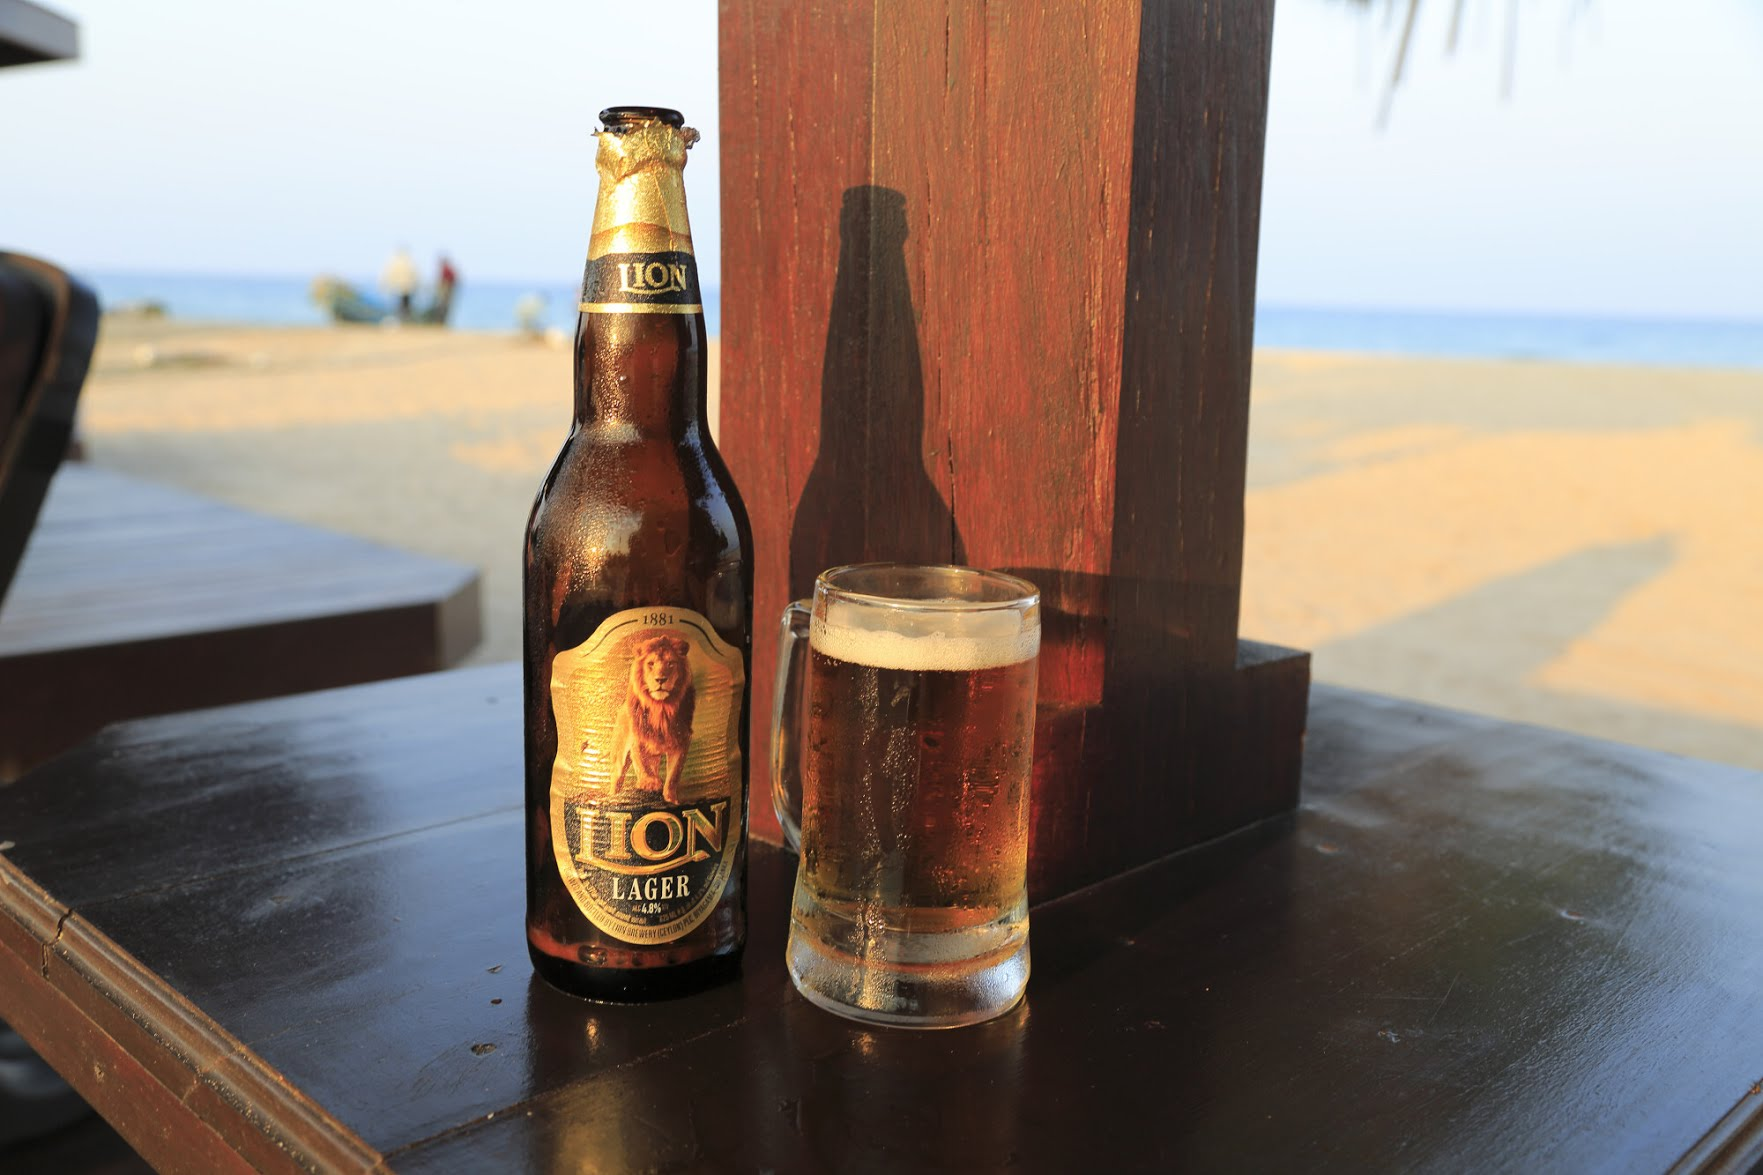 Sri Lanka has some rather good beers, with the Lion brand being a particularly highly regarded lager. Photo: Universal Images Group via Getty Images